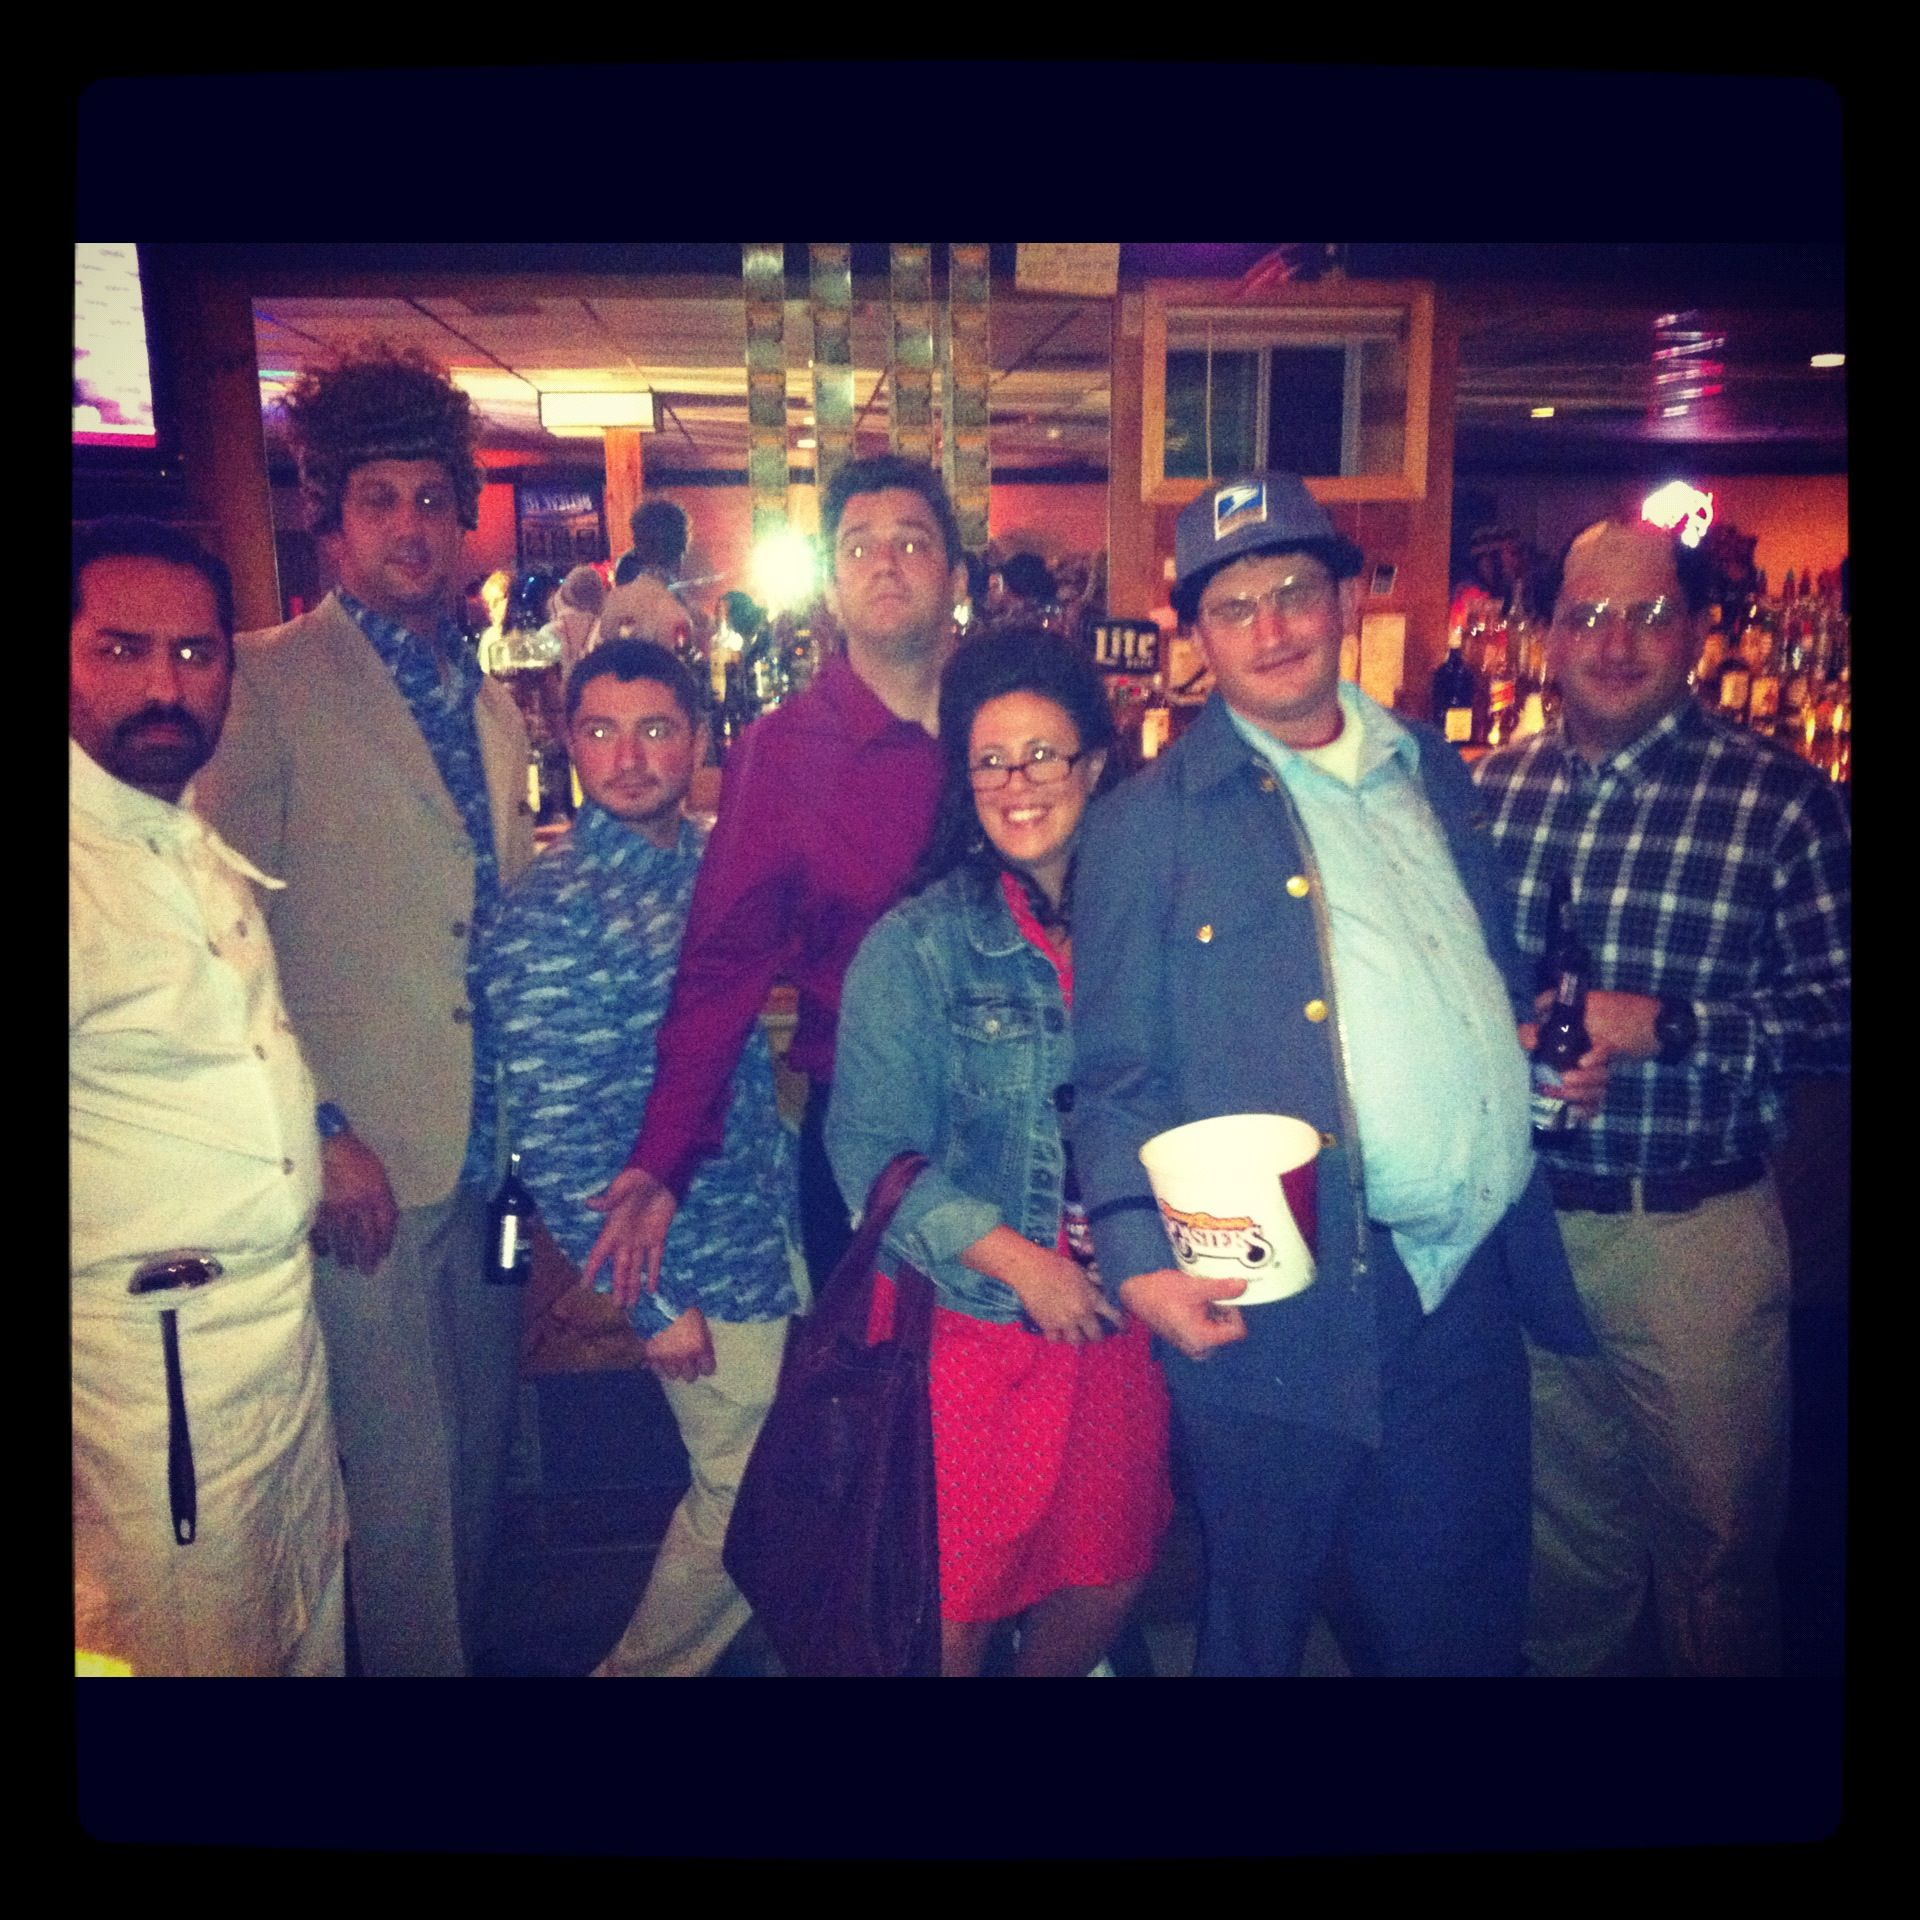 Seinfeld group halloween costume won first prize at the party I ...